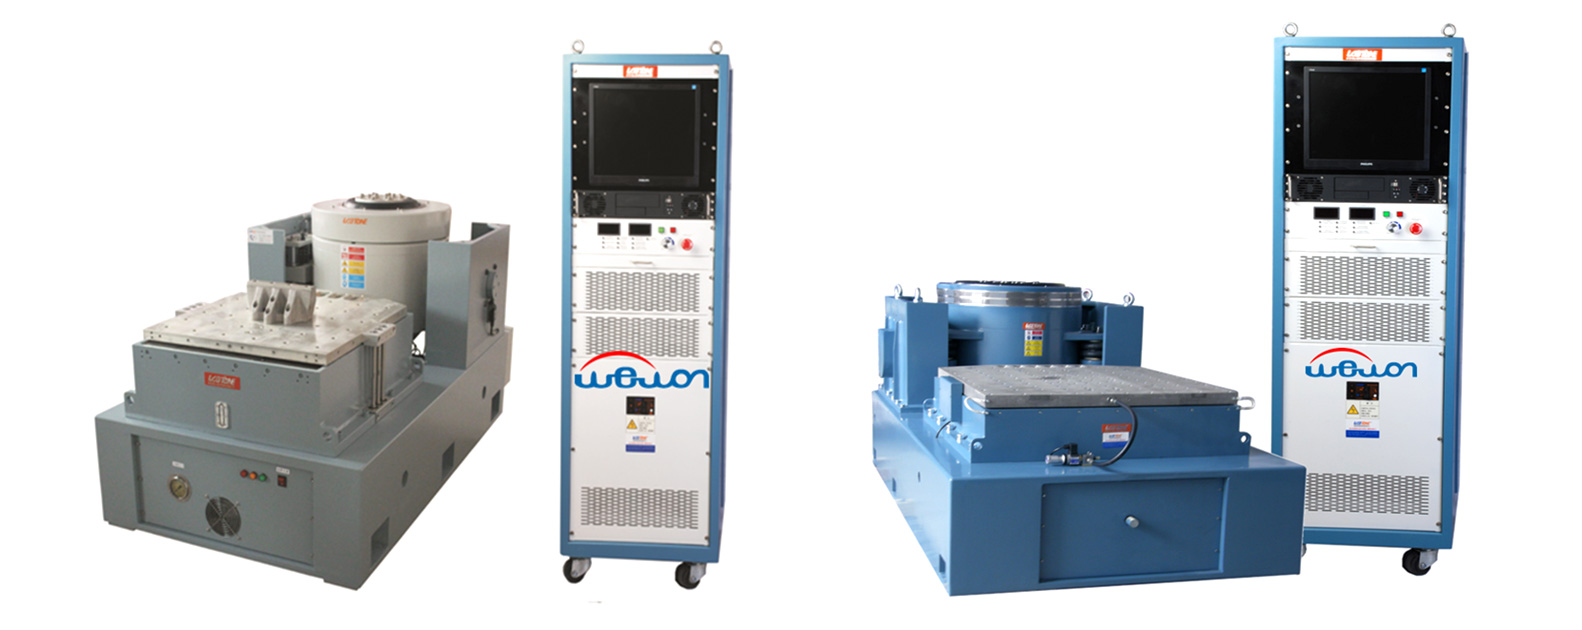 Vibration Testing Equipment